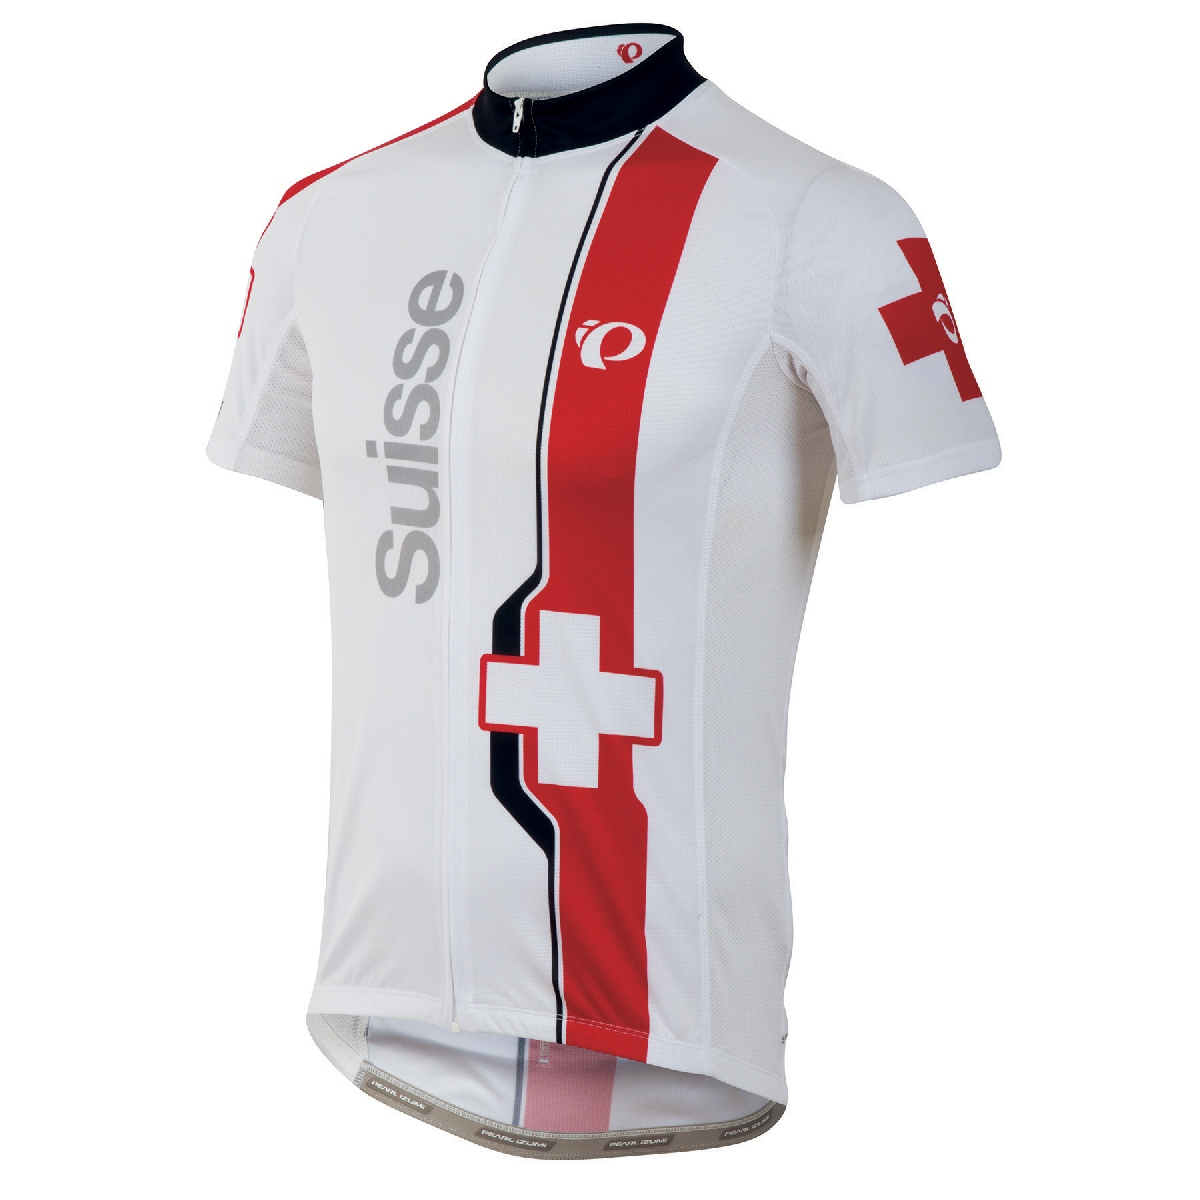 Pearl Izumi Elite LTD Country Short Sleeve Cycling Jersey Men's Size S Suisse U.S.A. & Canada